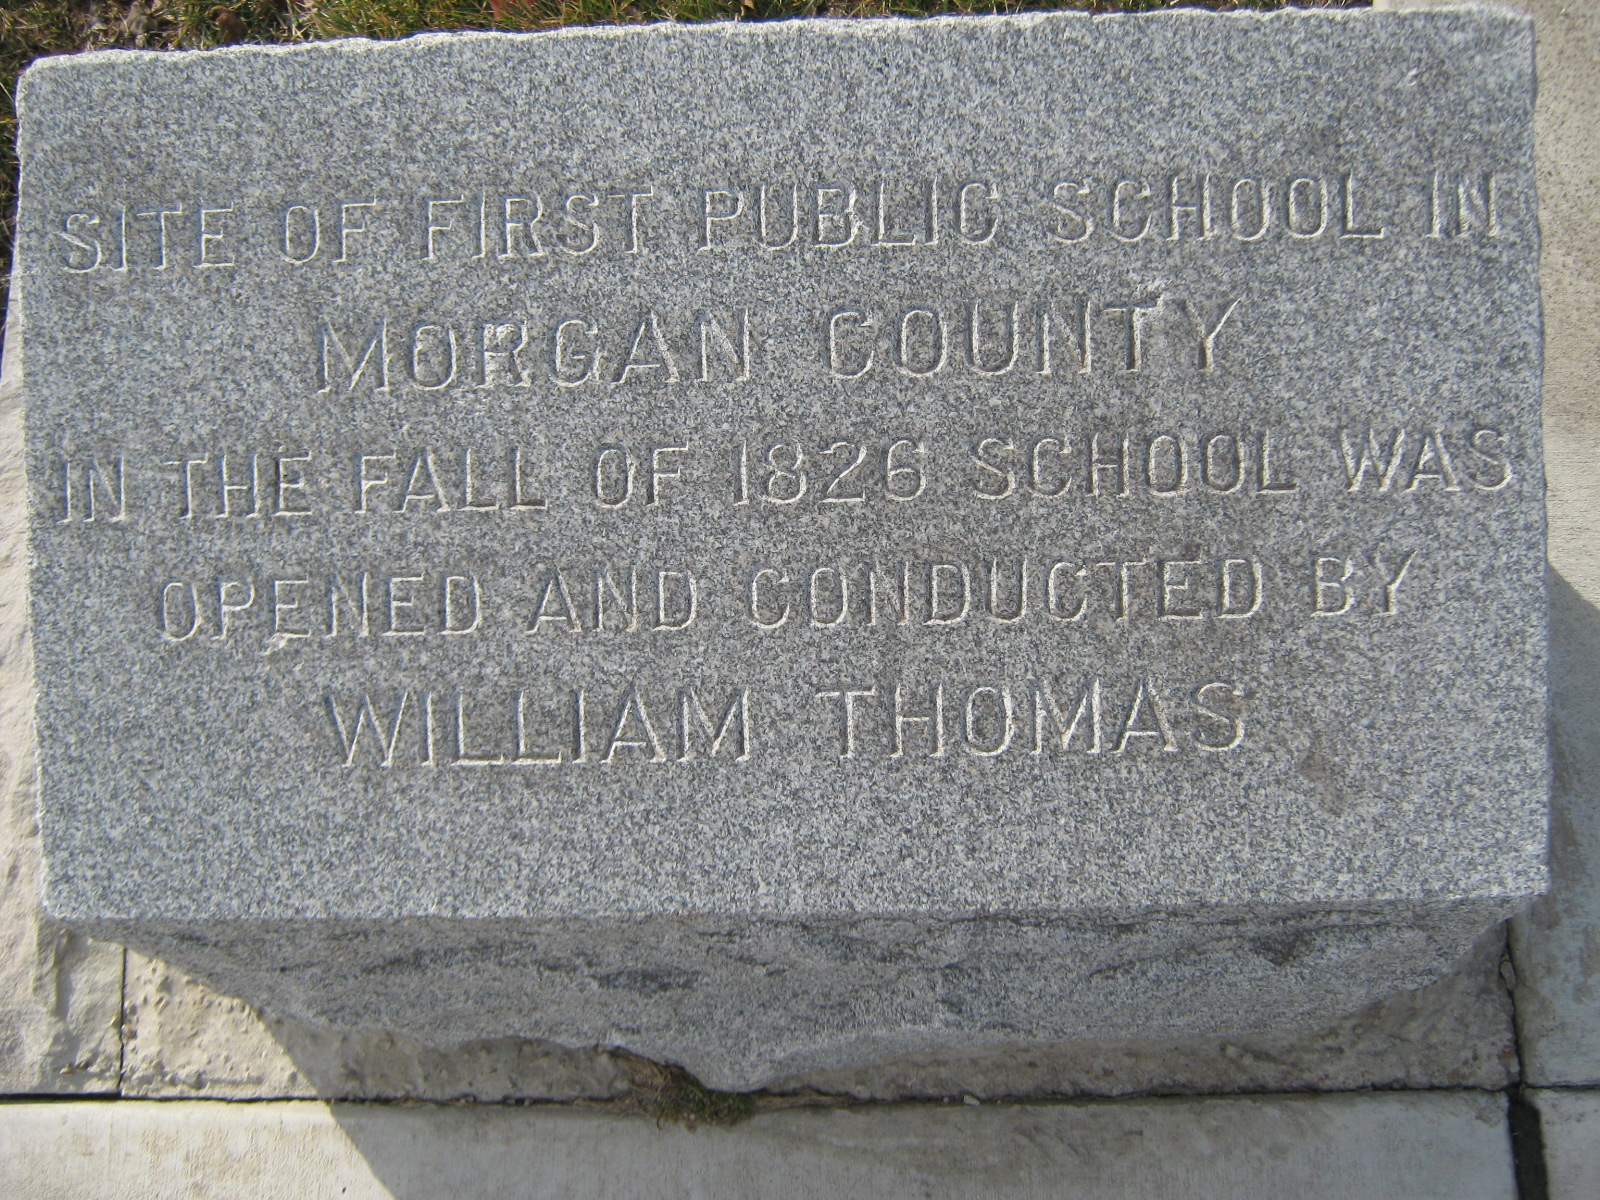 Located on East Collage, near the church sign.